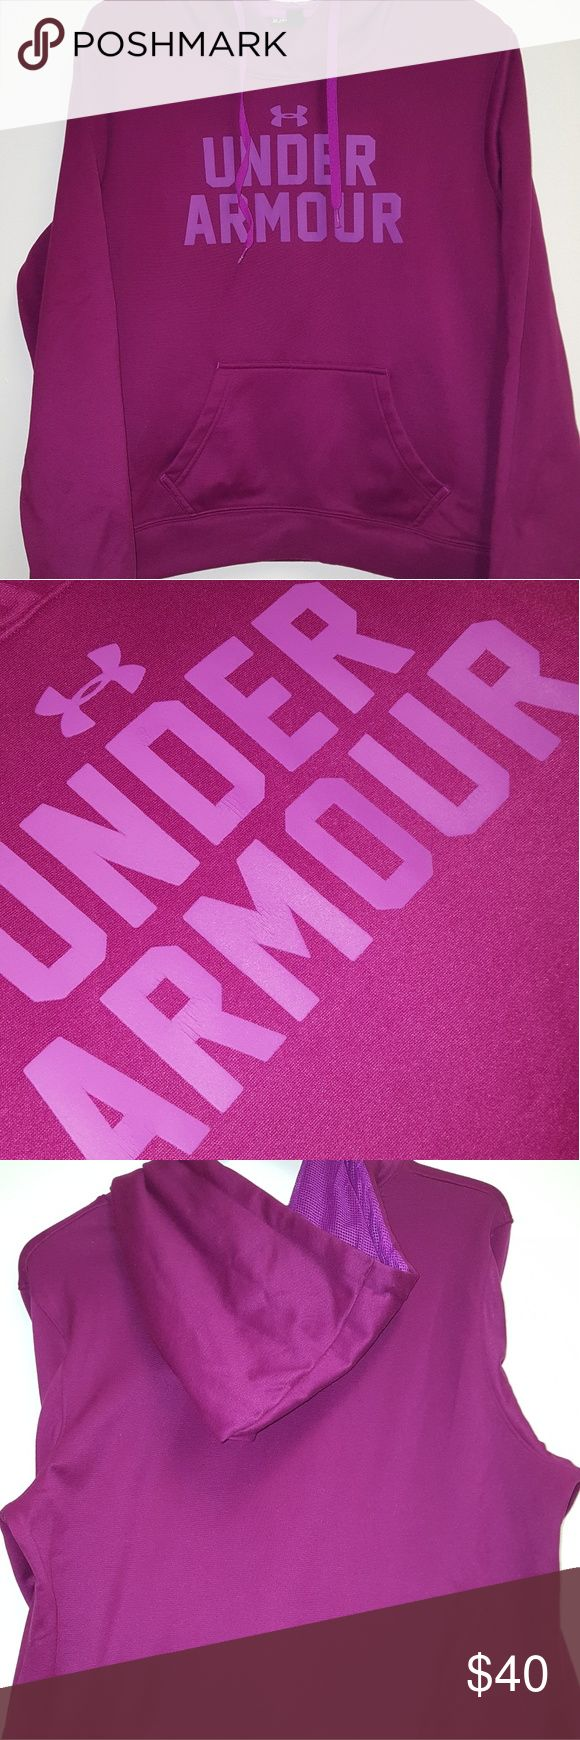 UNDER ARMOUR STORM CALIBER HOODIE SILKY/SOFT TO THE TOUCH FLEECE STYLE WOMENS HOODIE   NOT BEEN WORN IN YET BUT HAS BEEN WORN FEW TIMES...  LETTERING IS ALL INTACT, BUT SLIGHT CRACKLE SHOWING.  THE COLOR IS BETWEEN PURPLE AND PINK TONES. Under Armour Tops Sweatshirts & Hoodies